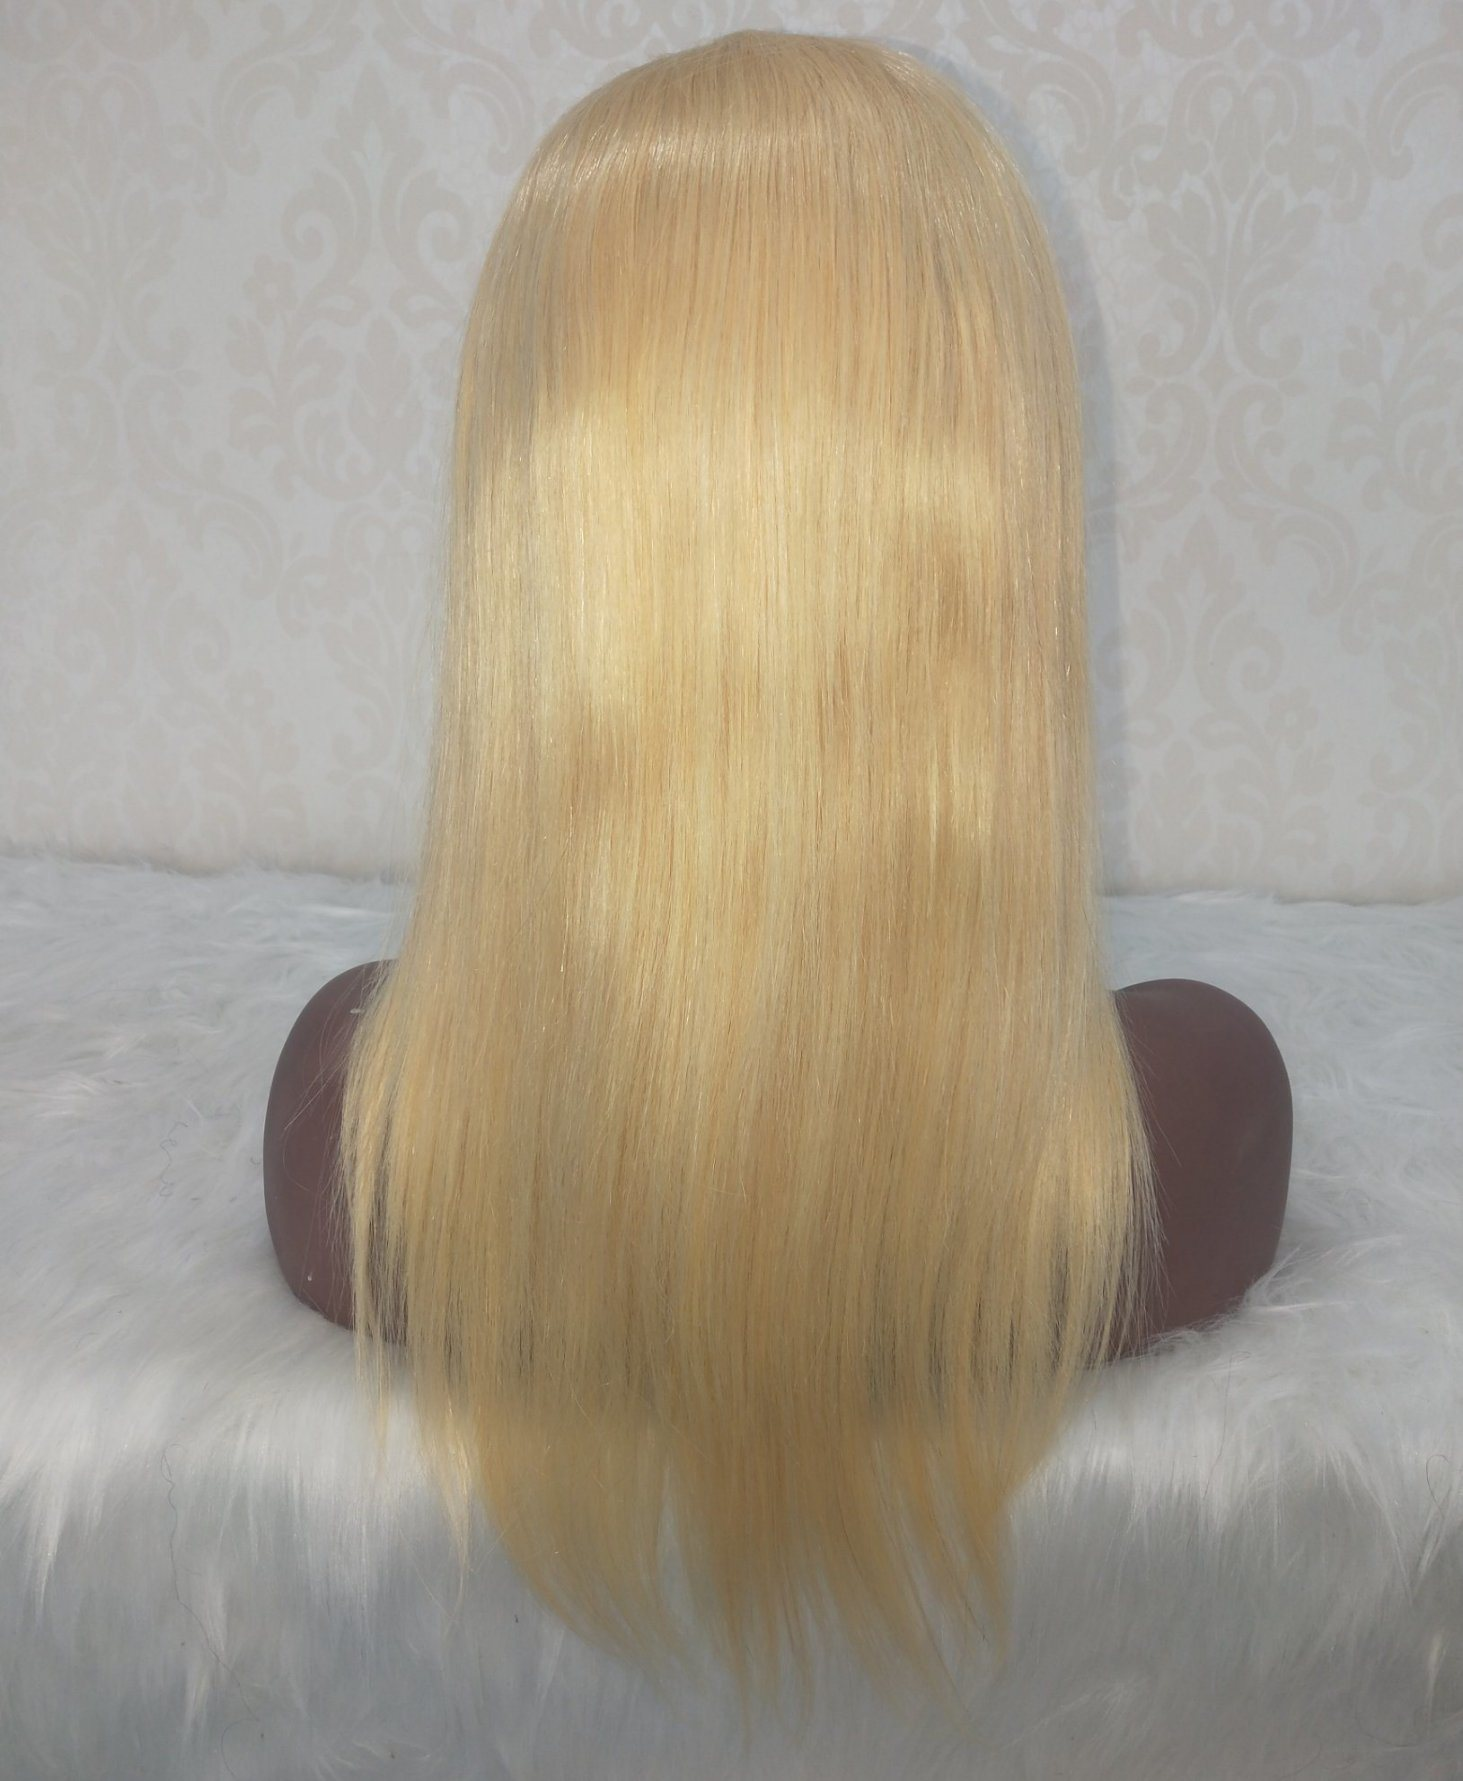 China 8 10 12 14 Inch Human Hair Bob Lace Front Wig Full Lace Wig Brazilian Virgin Remy Color Blonde Human Hair China Human Hair And Human Hair Wig Price